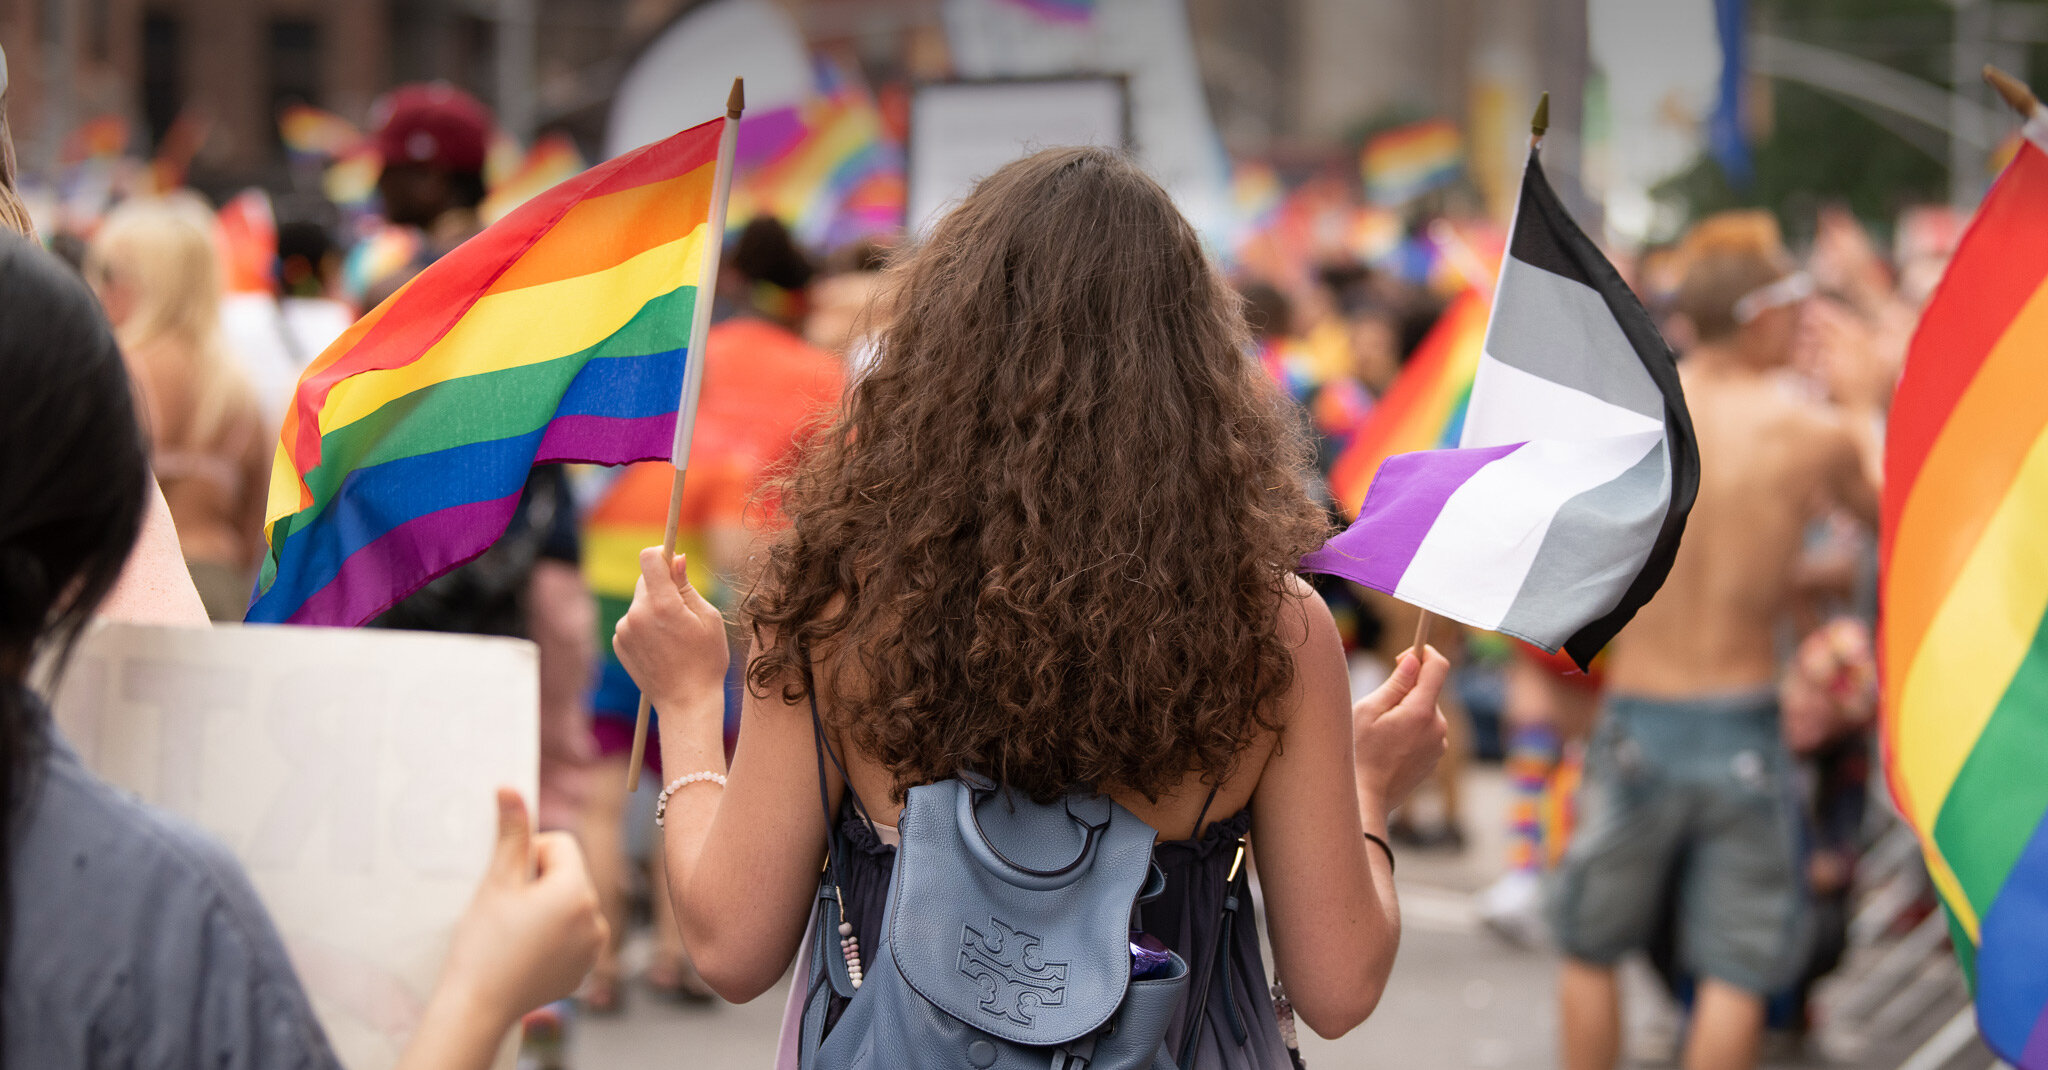 A person with long curly brown hair holds a rainbow flag in their left hand and an ace flag in their right hand in a pride parade.